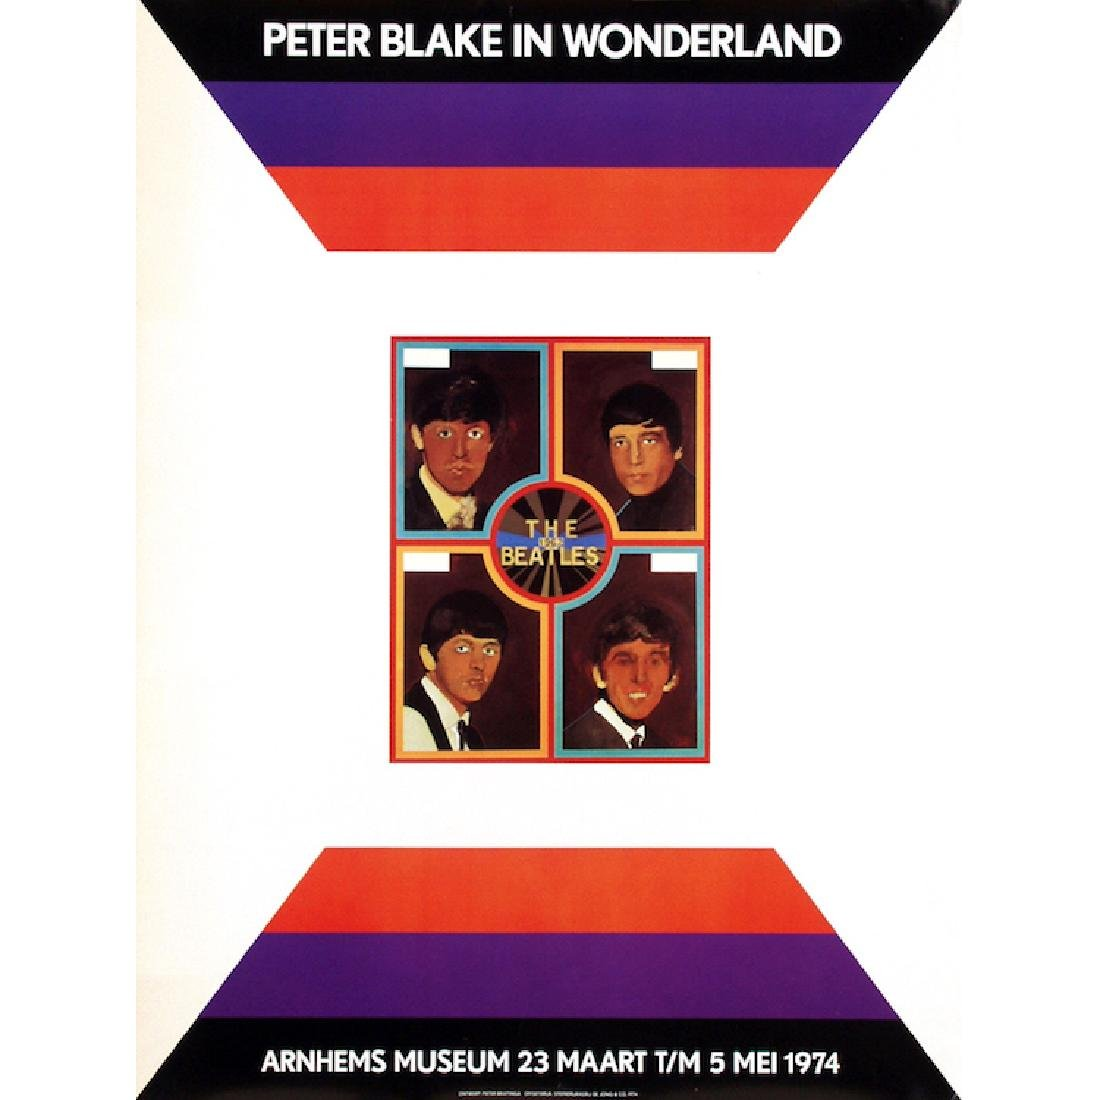 Beatles - Peter Blake in Wonderland - 1974 Poster